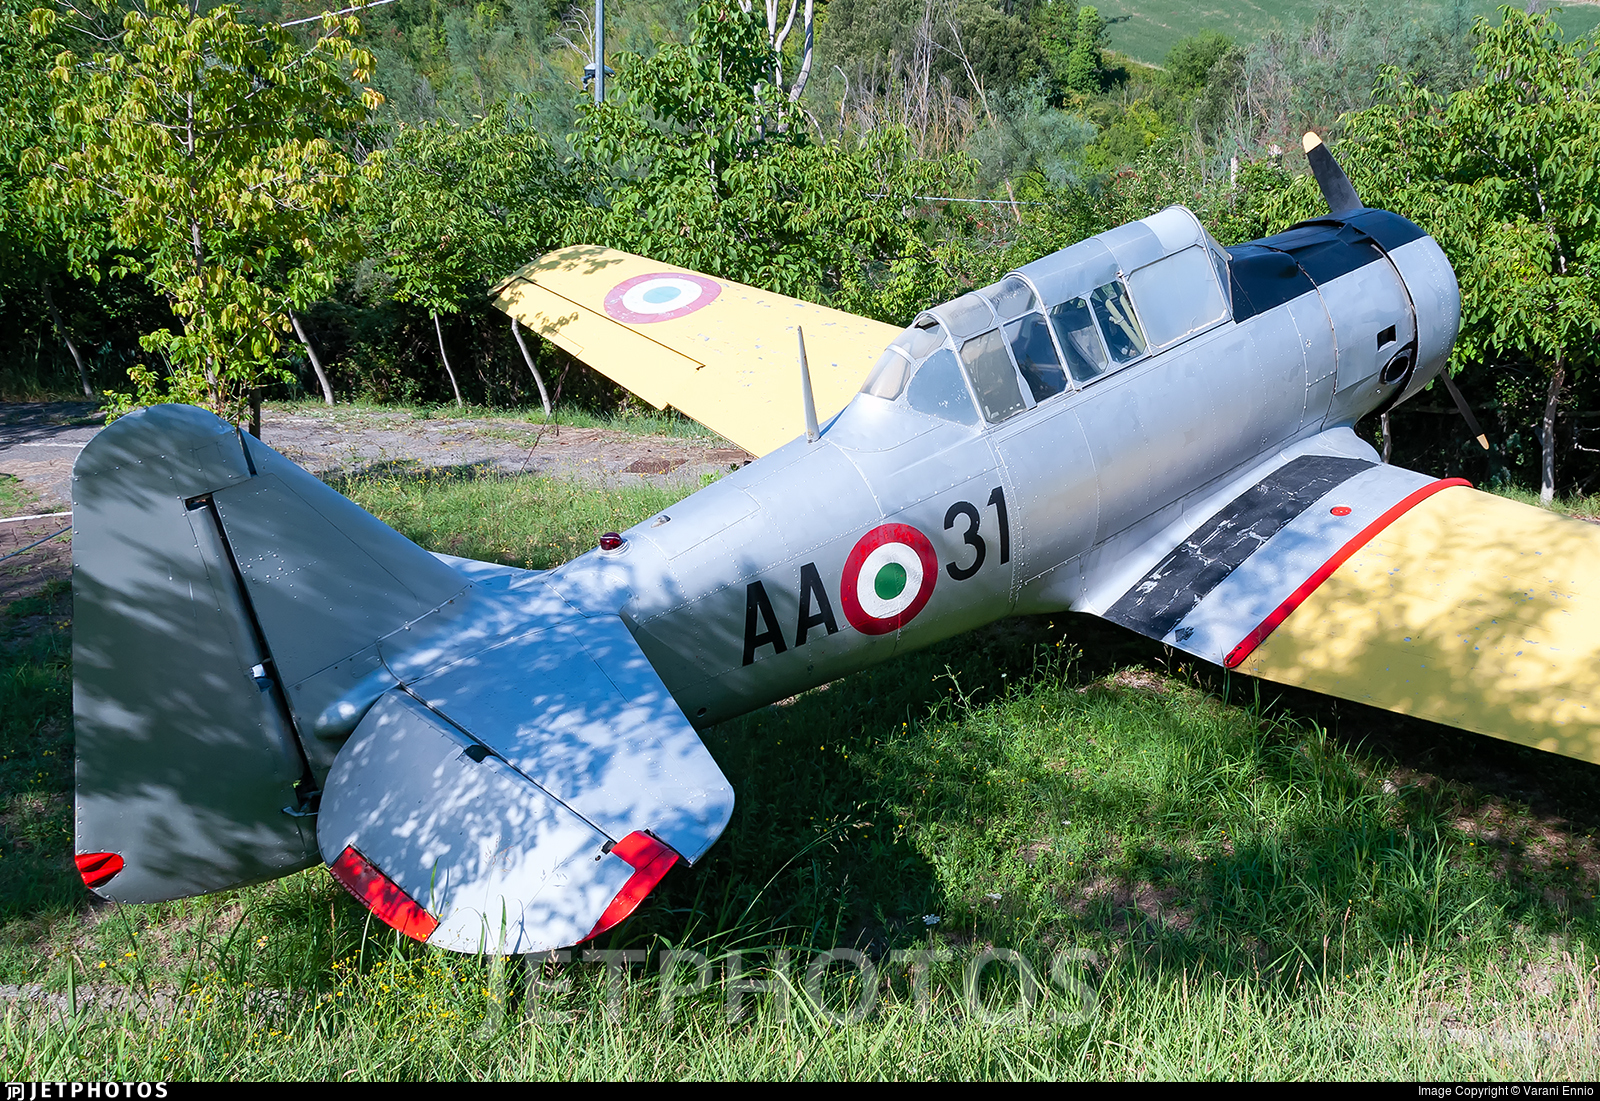 MM53042 - North American T-6G Texan - Italy - Air Force